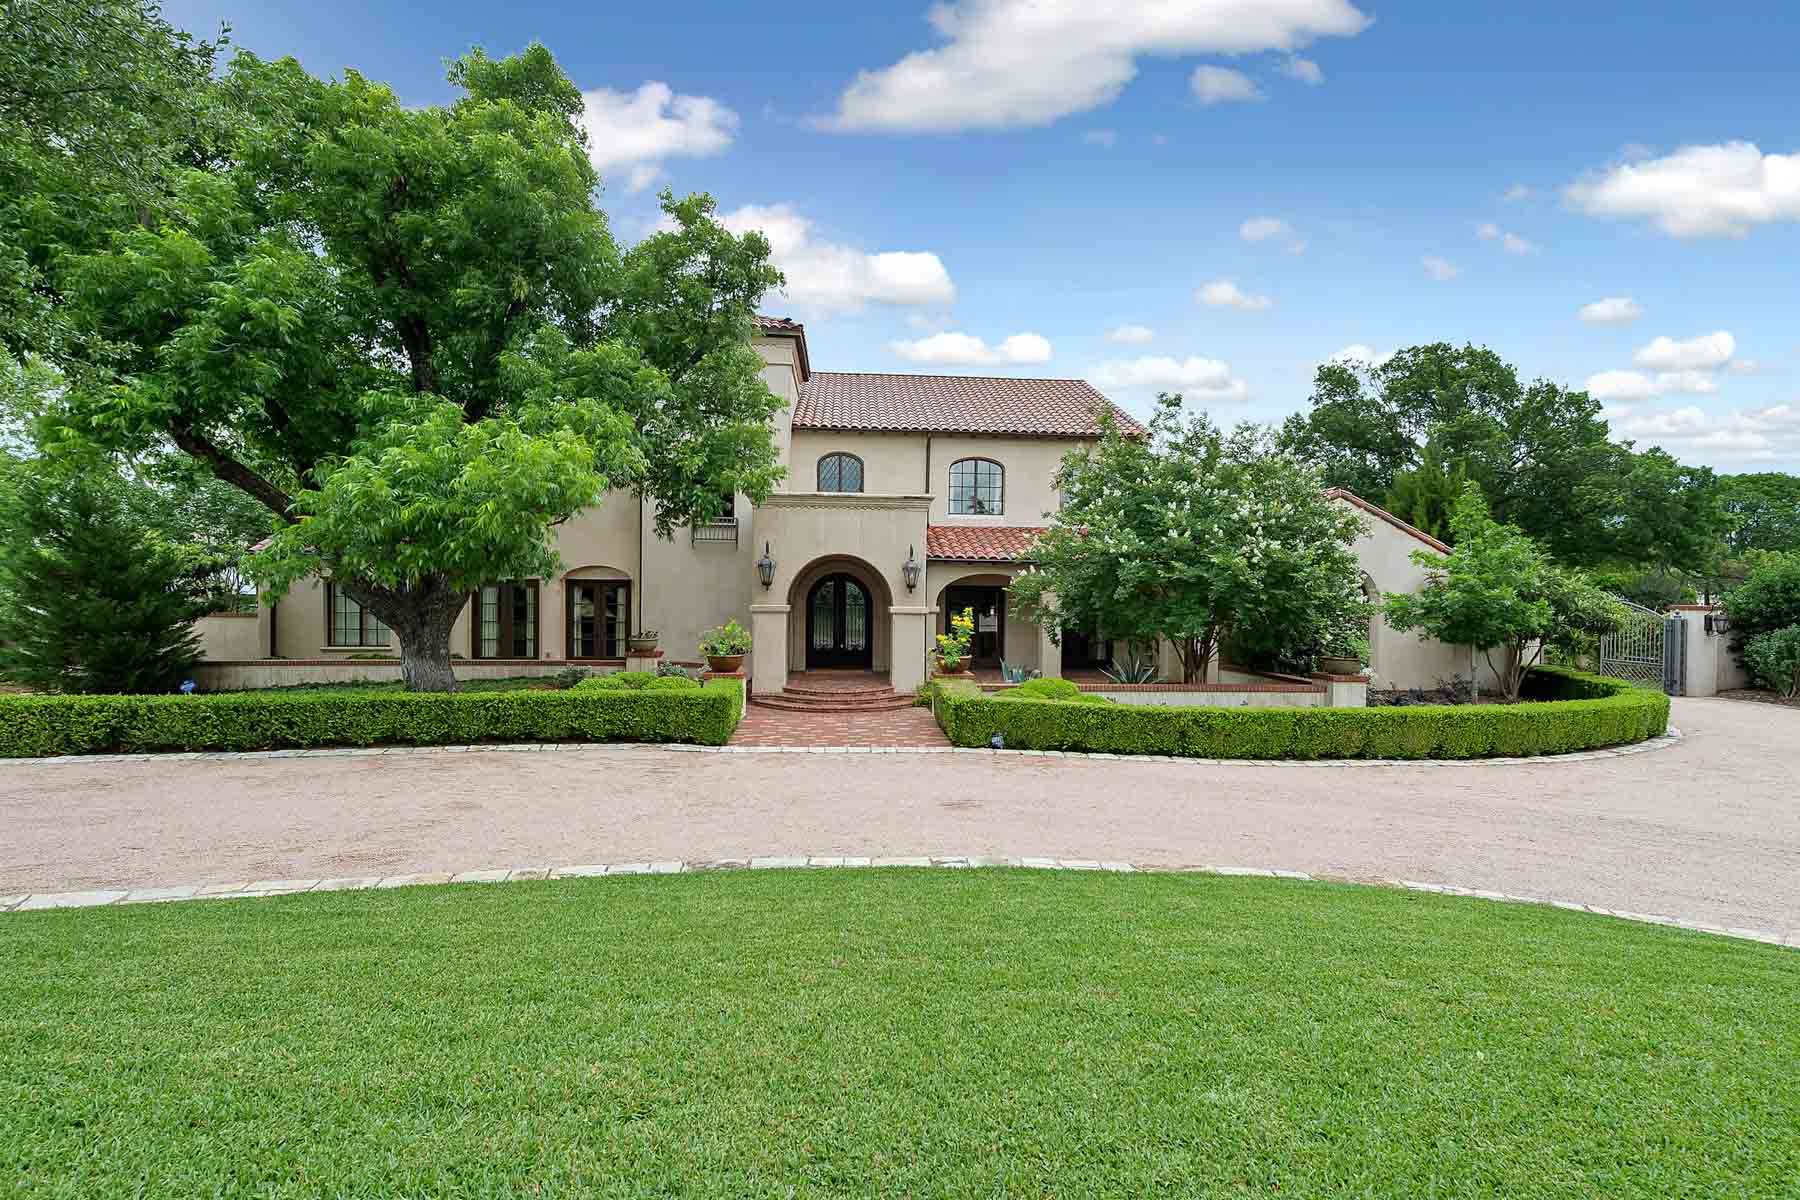 Casa Unifamiliar por un Venta en Beautiful Spanish Inspired Fort Worth Home 2017 Four Oaks Fort Worth, Texas 76107 Estados Unidos